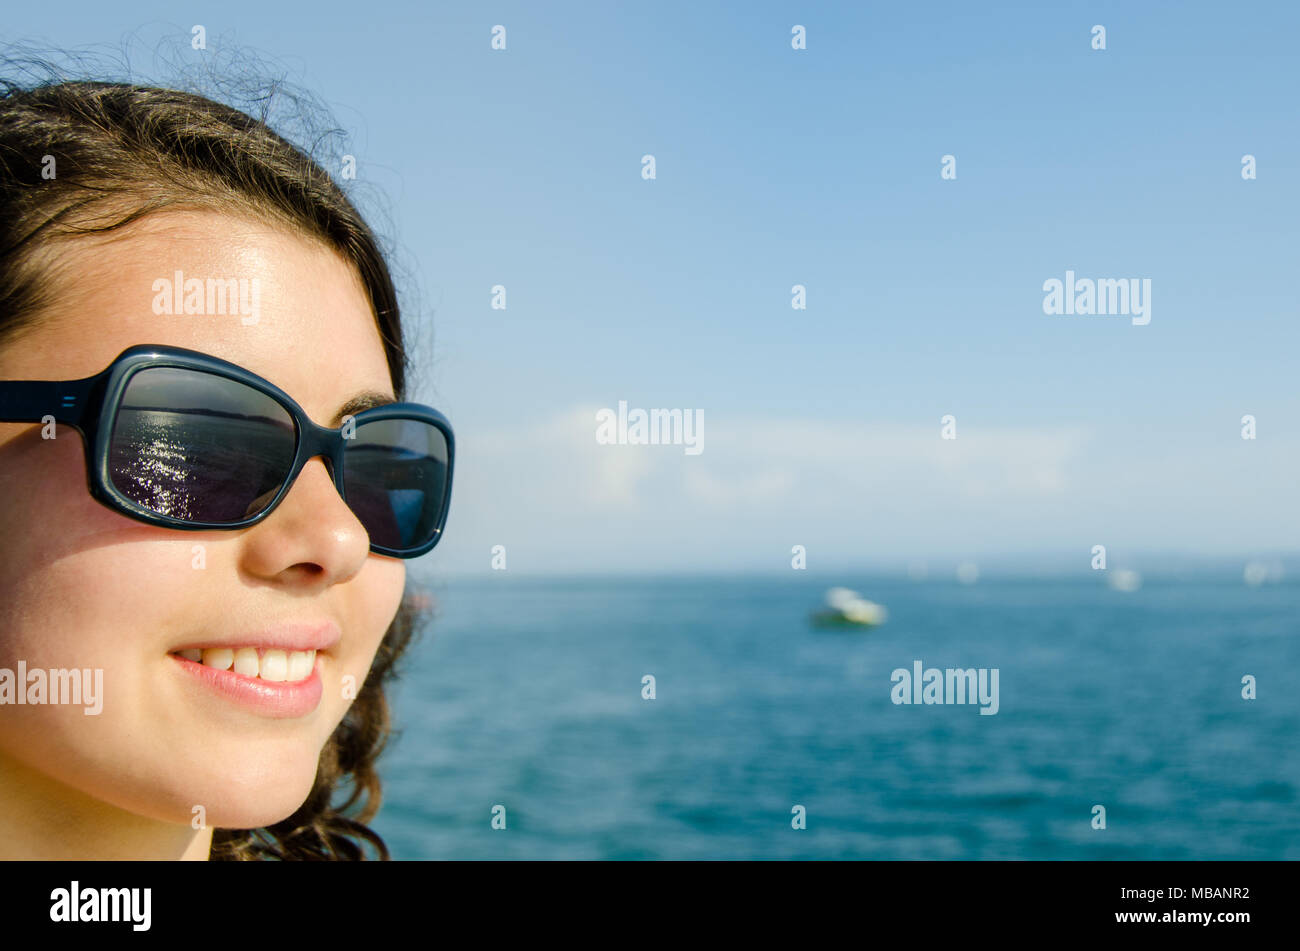 02fe9005b2 Portrait of happy young woman with sunglasses at the beach looking on copy  space with boats in the background